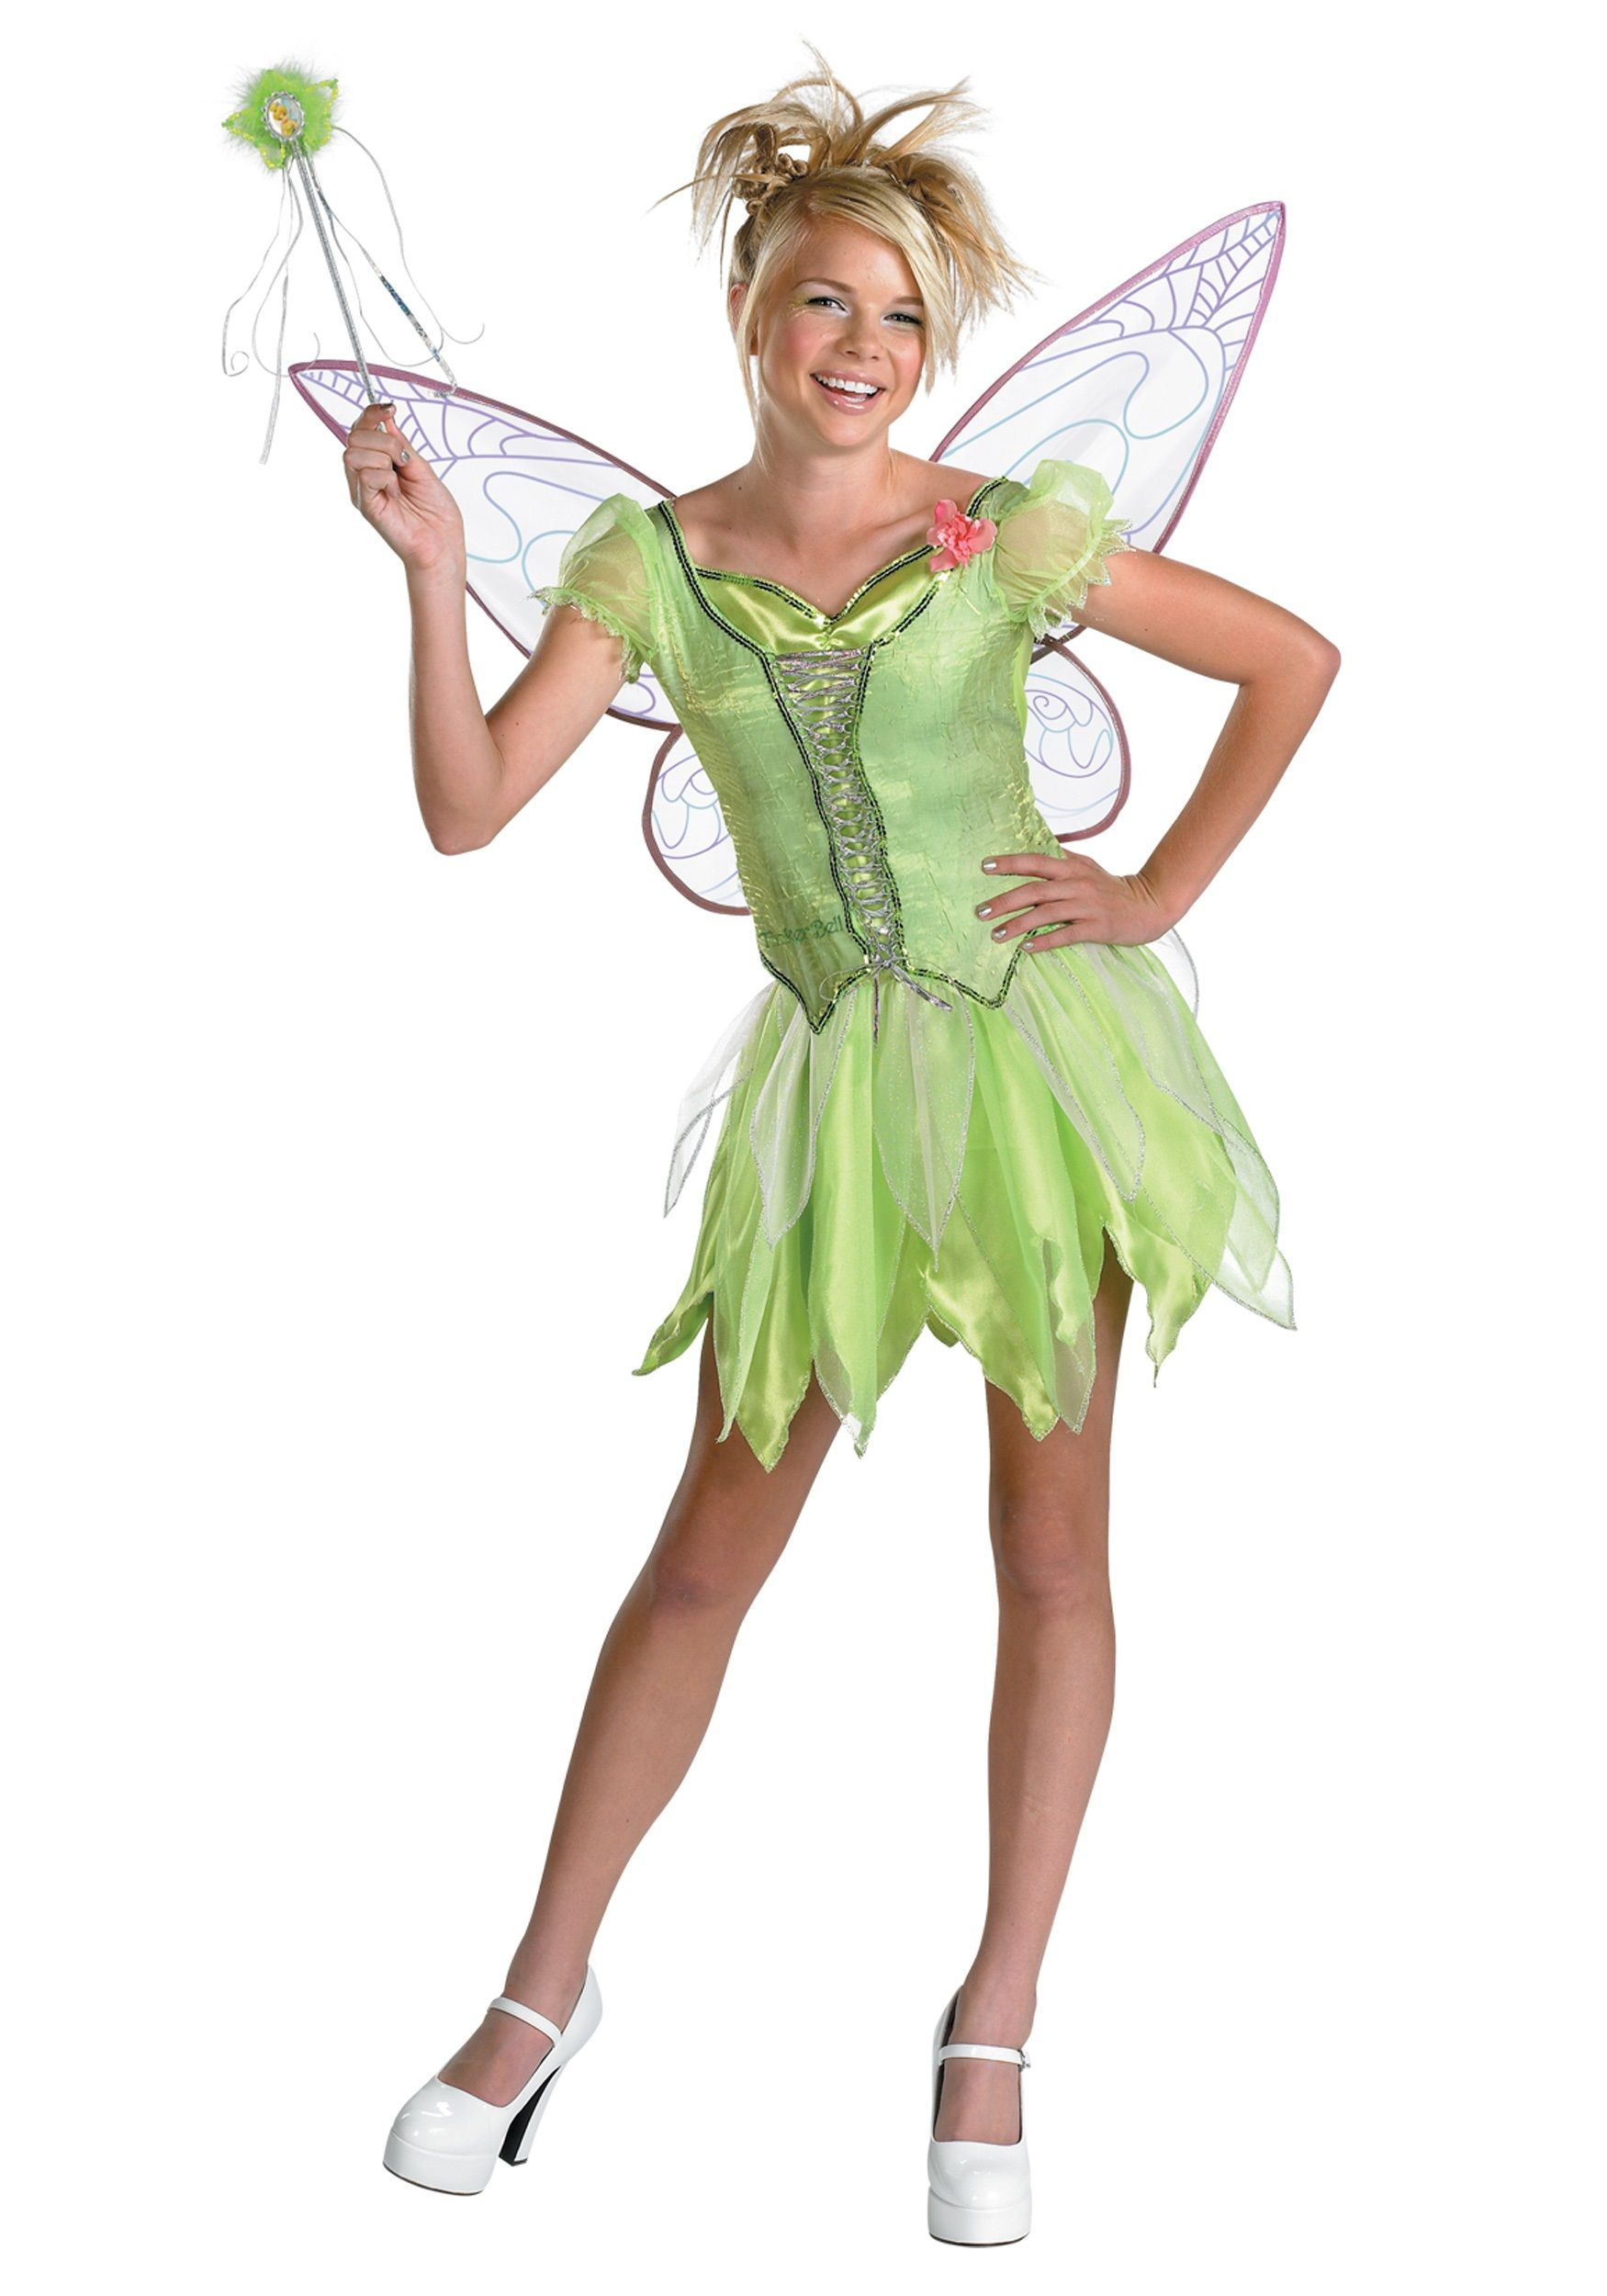 our teen tinkerbell costume is perfect for peter pan or fairy group costumes and is an officially licensed disney halloween costume